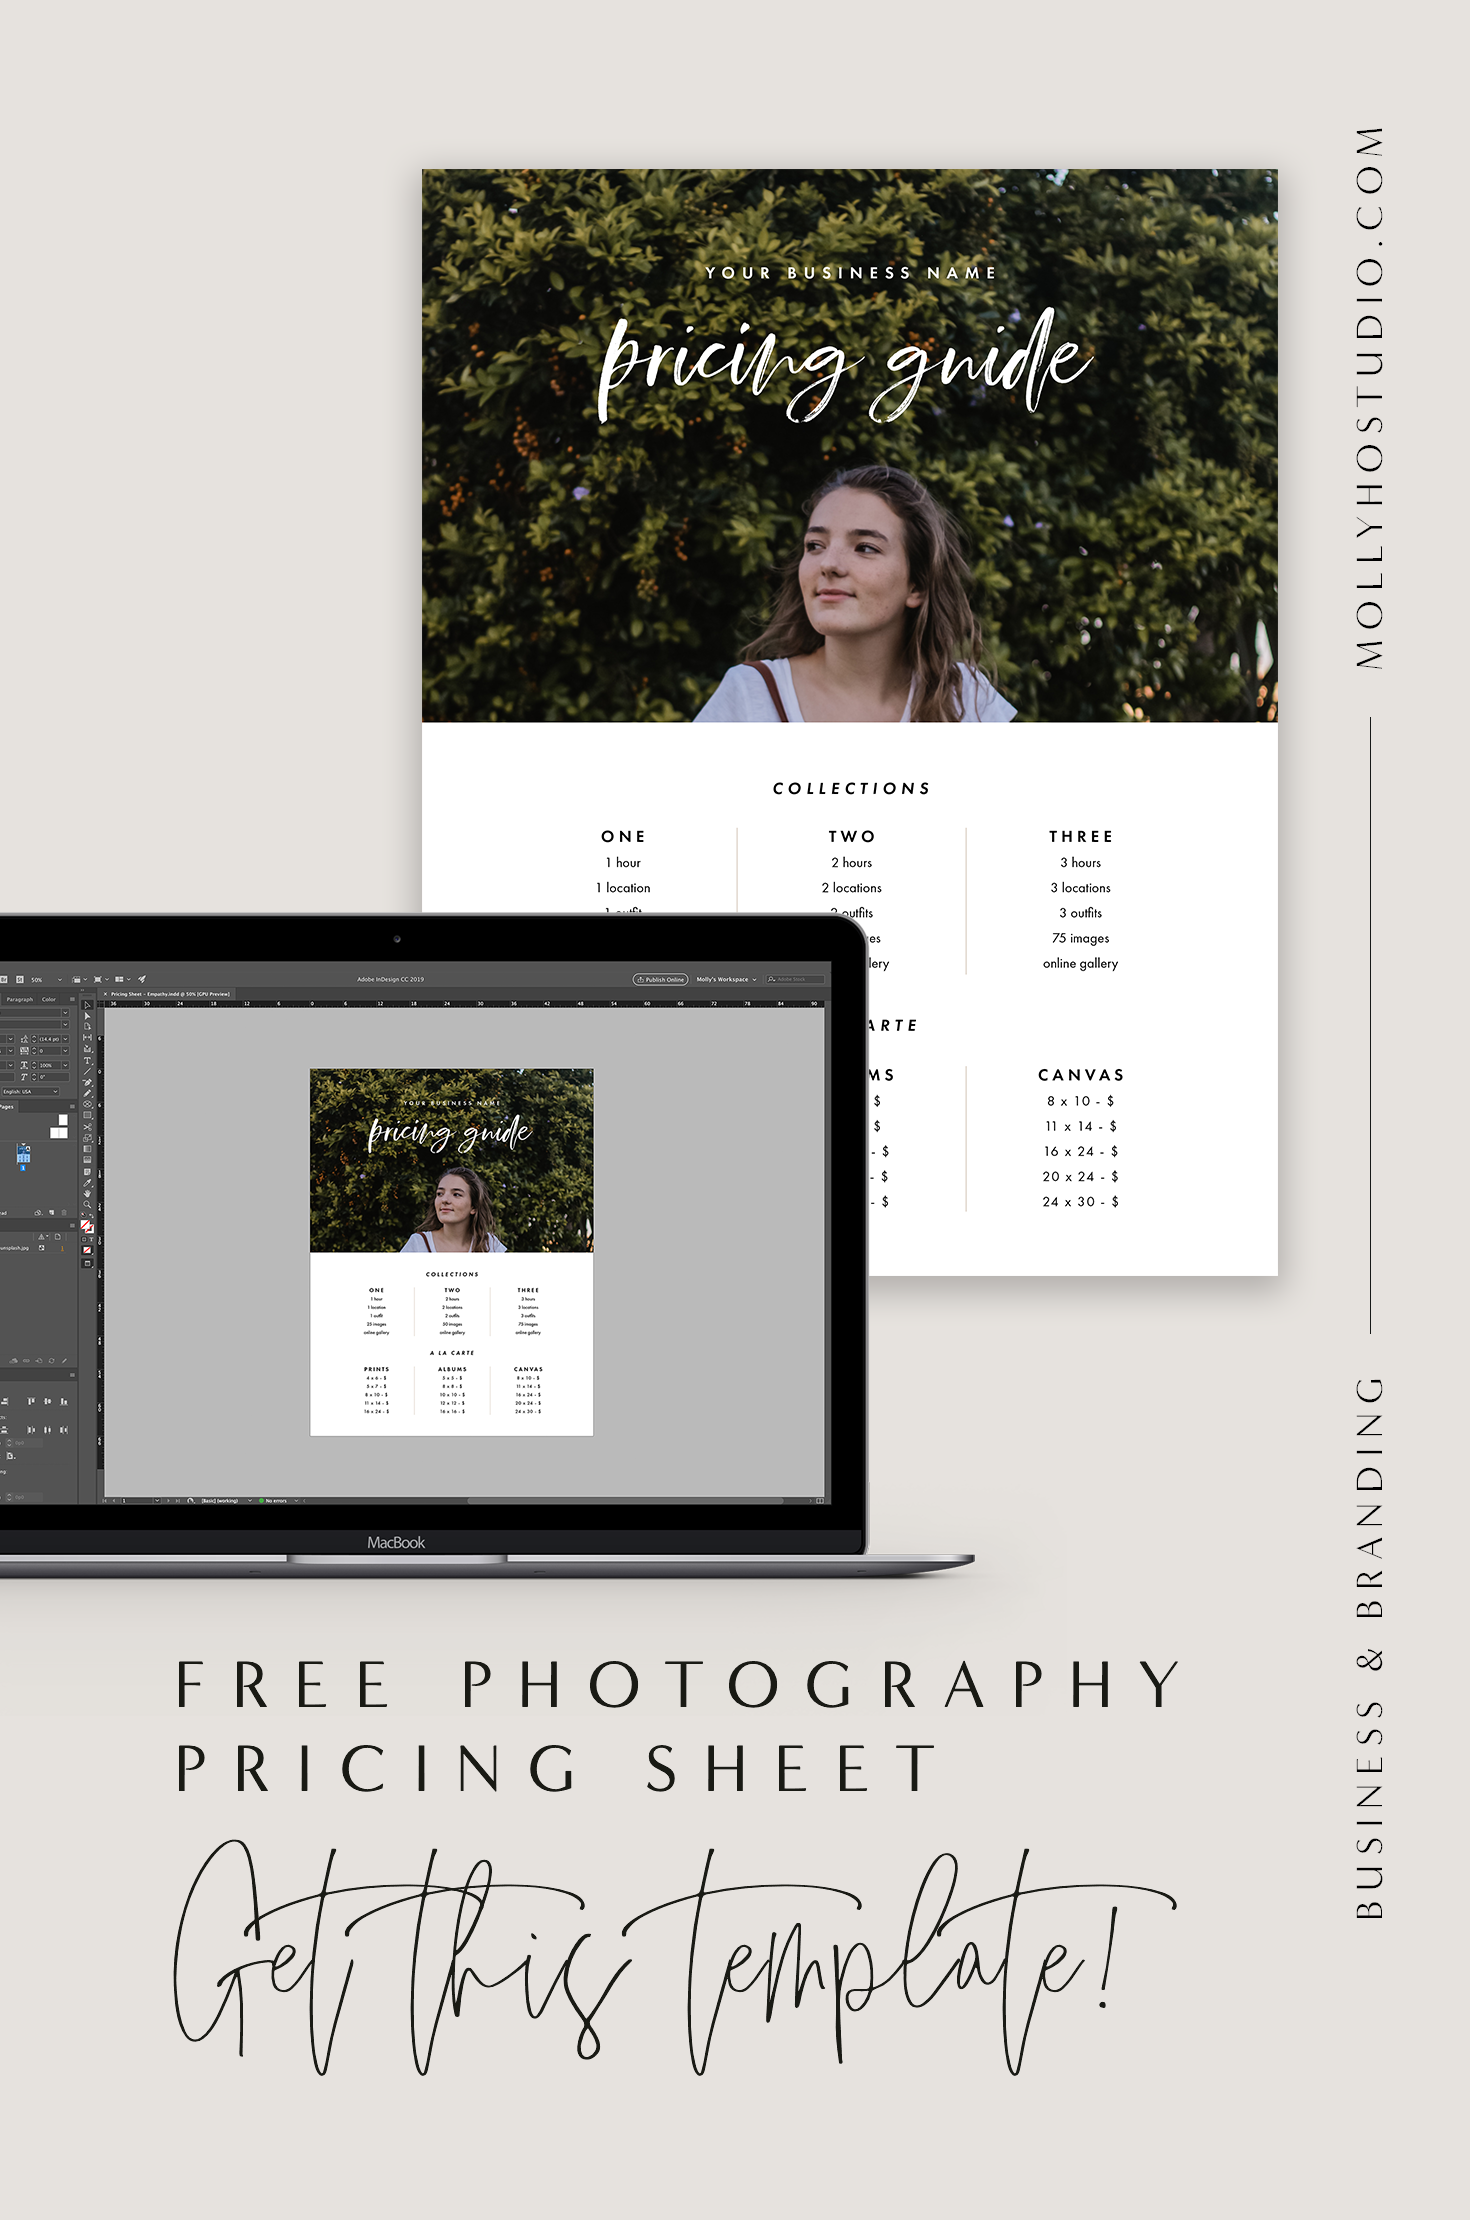 Free Photography Pricing Guide | Marketing Templates for